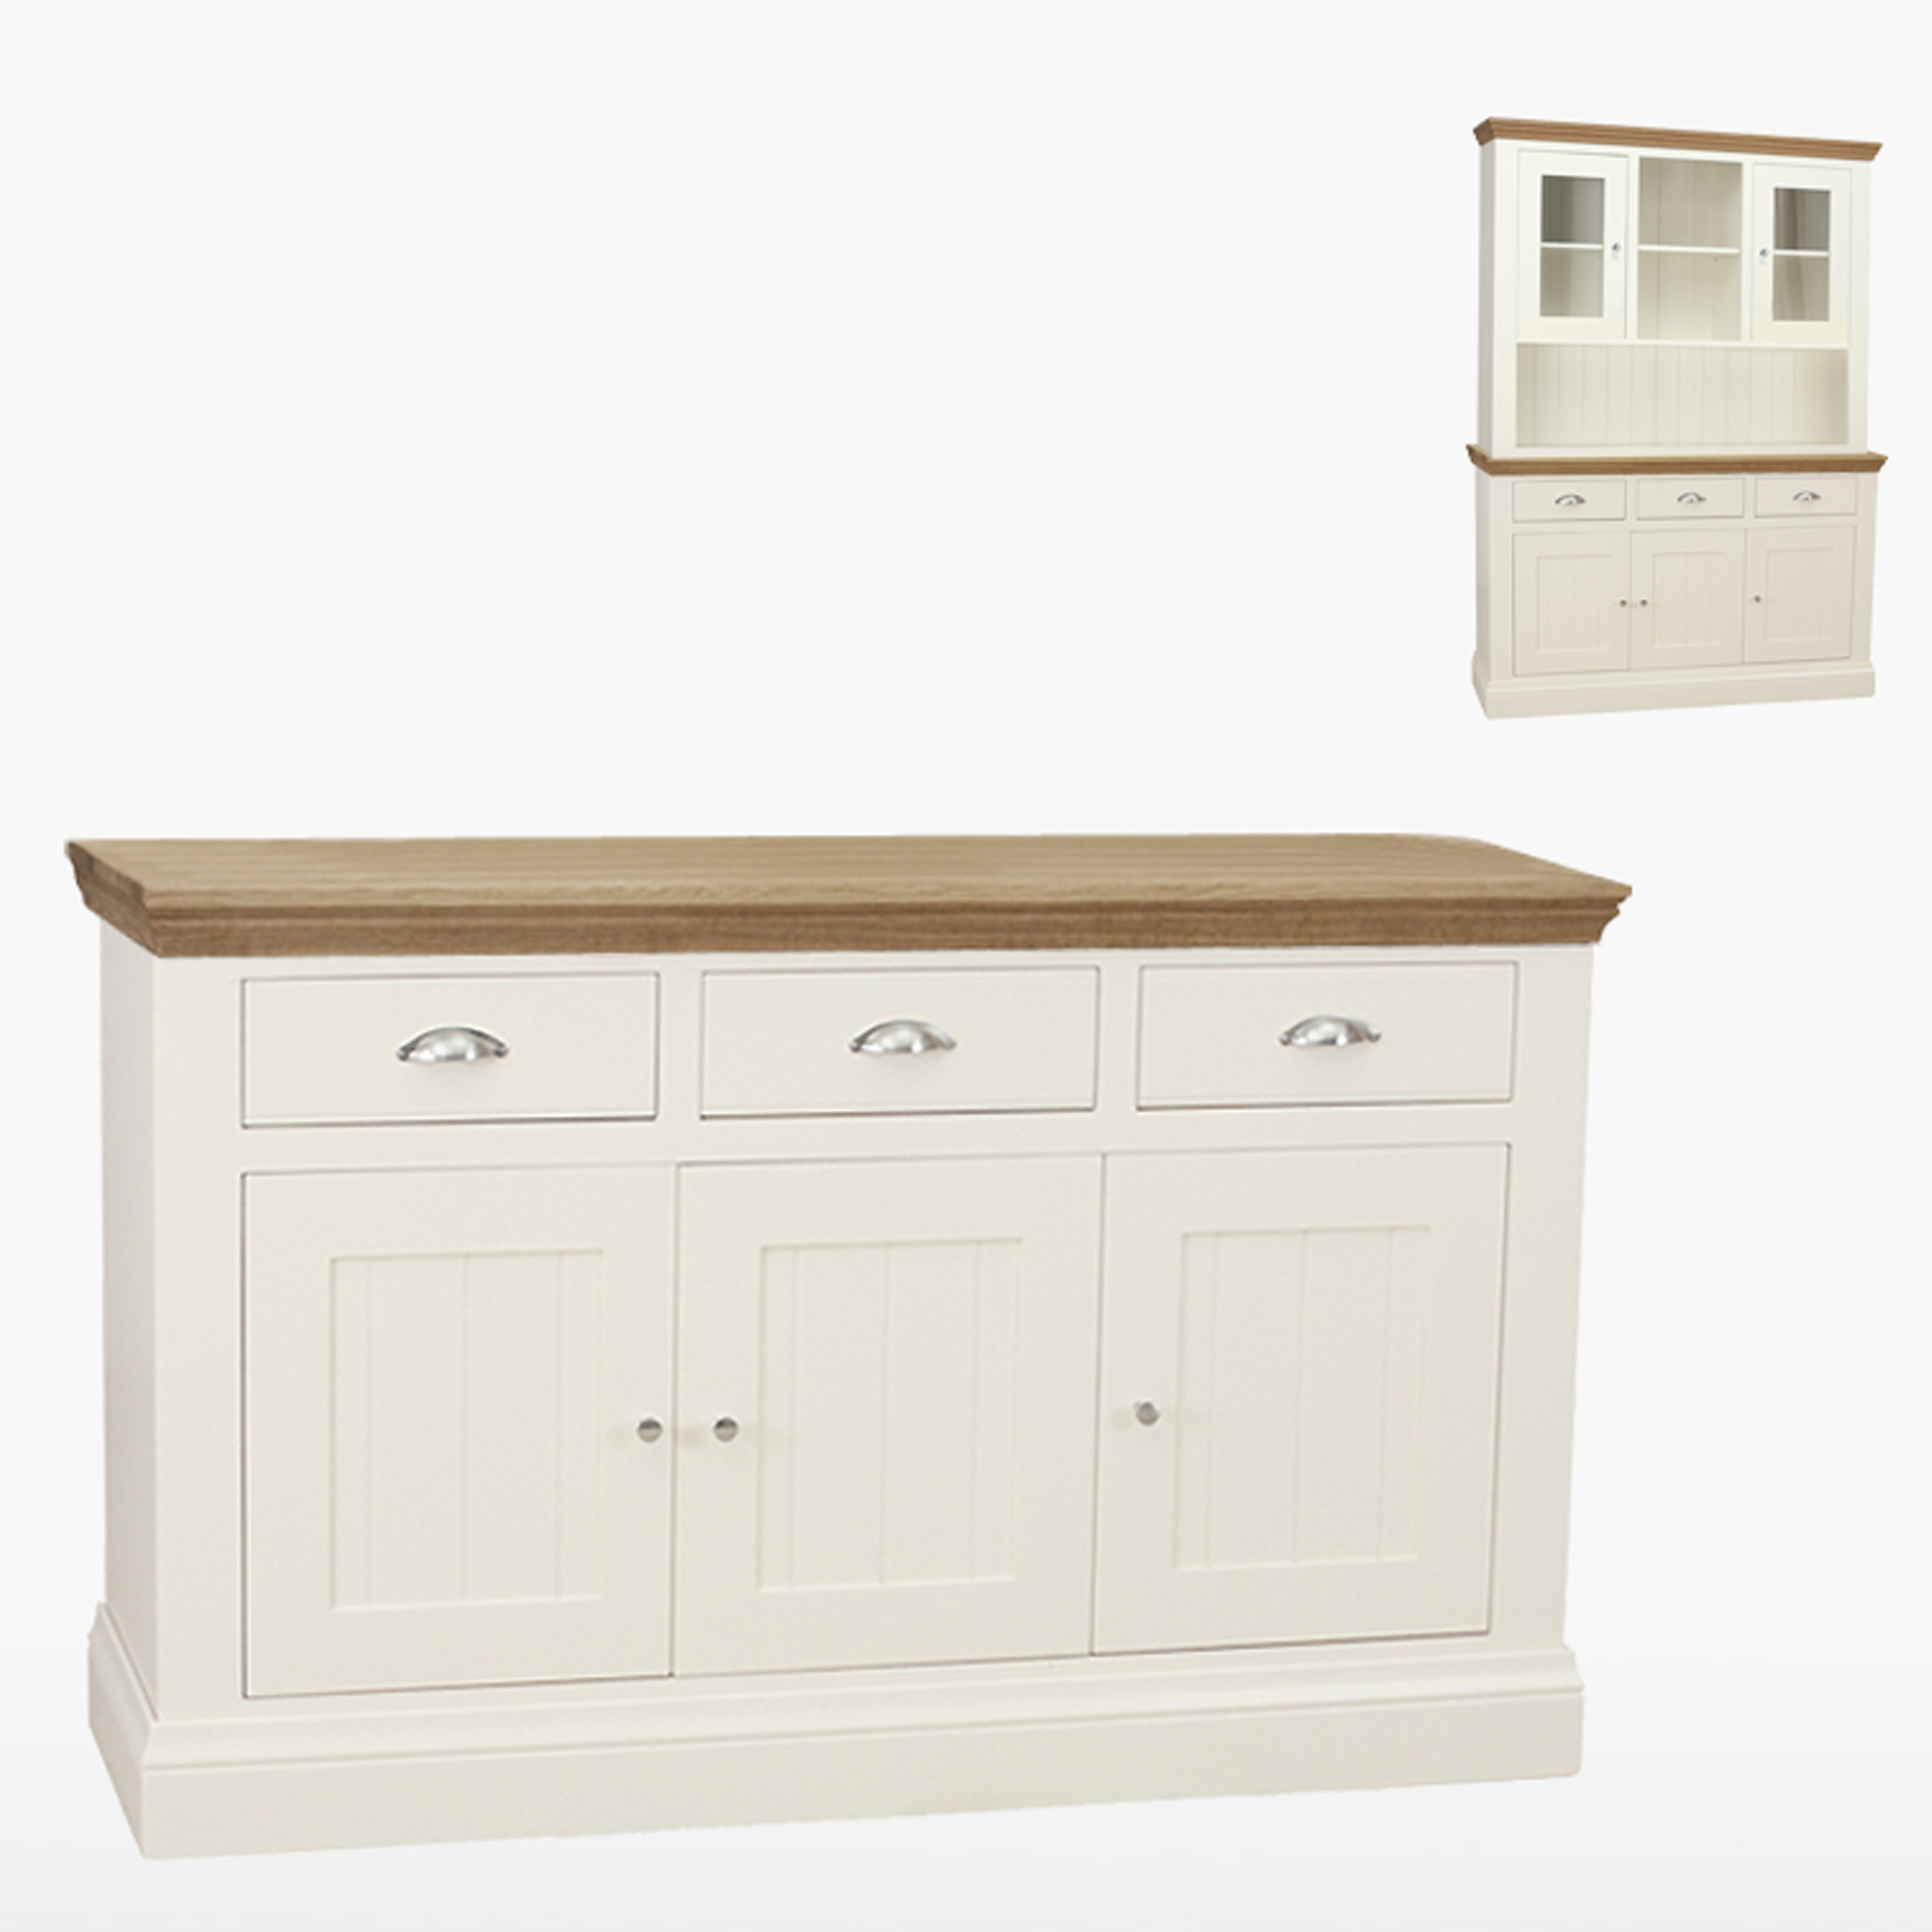 Isla Medium Sideboard